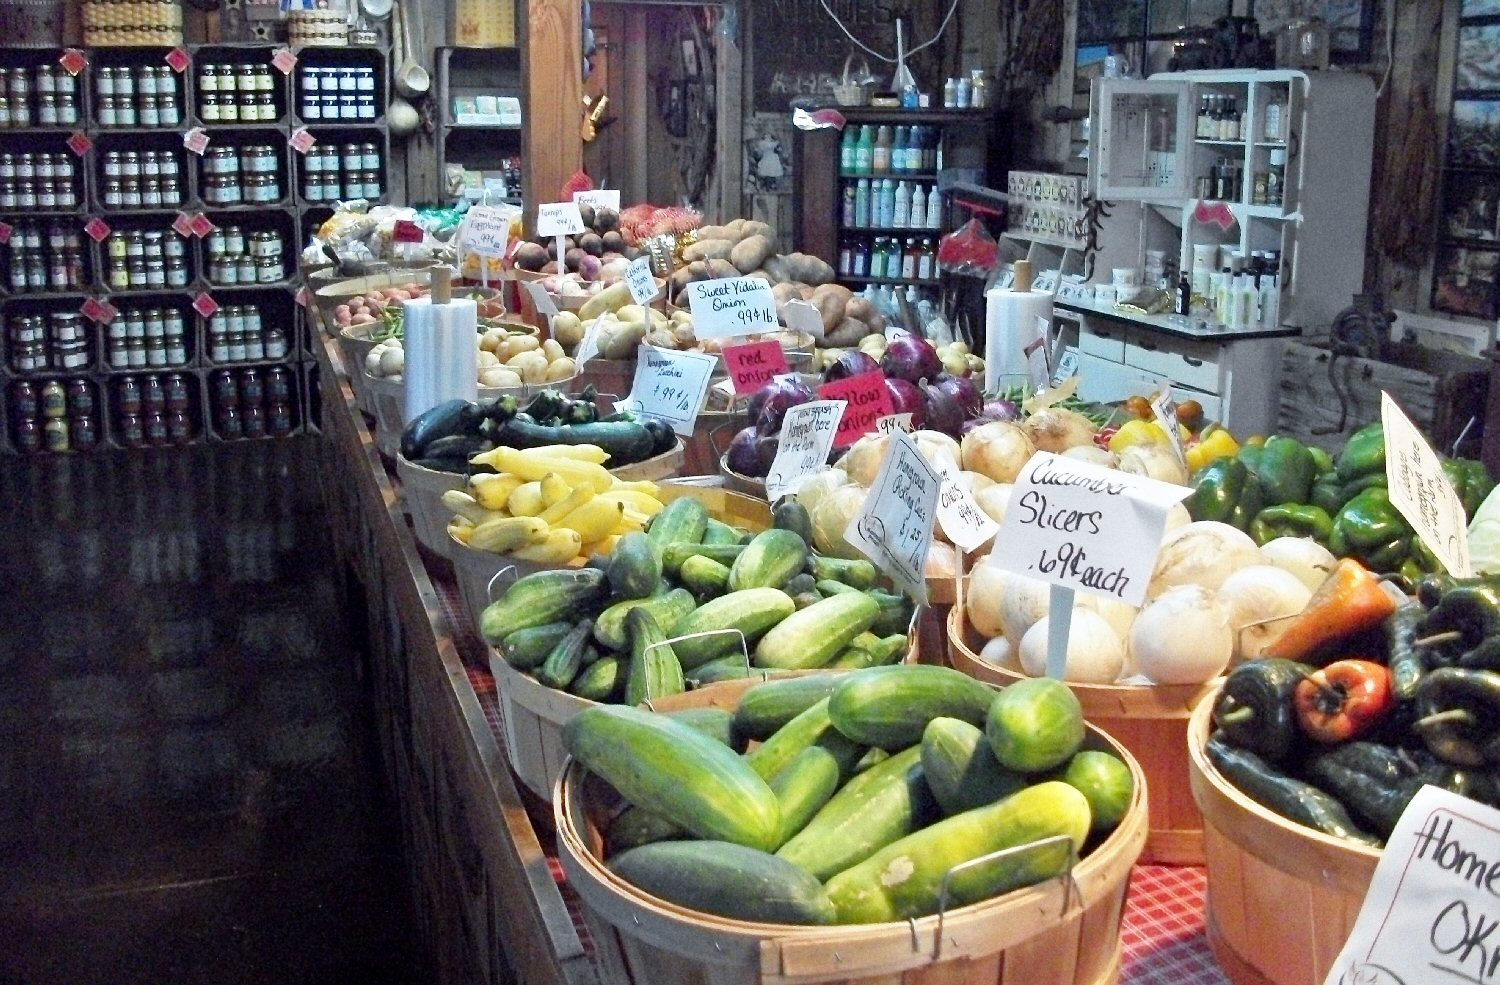 dennisons-market-local-vegetables-horse-cave-hart-co-ky.jpg